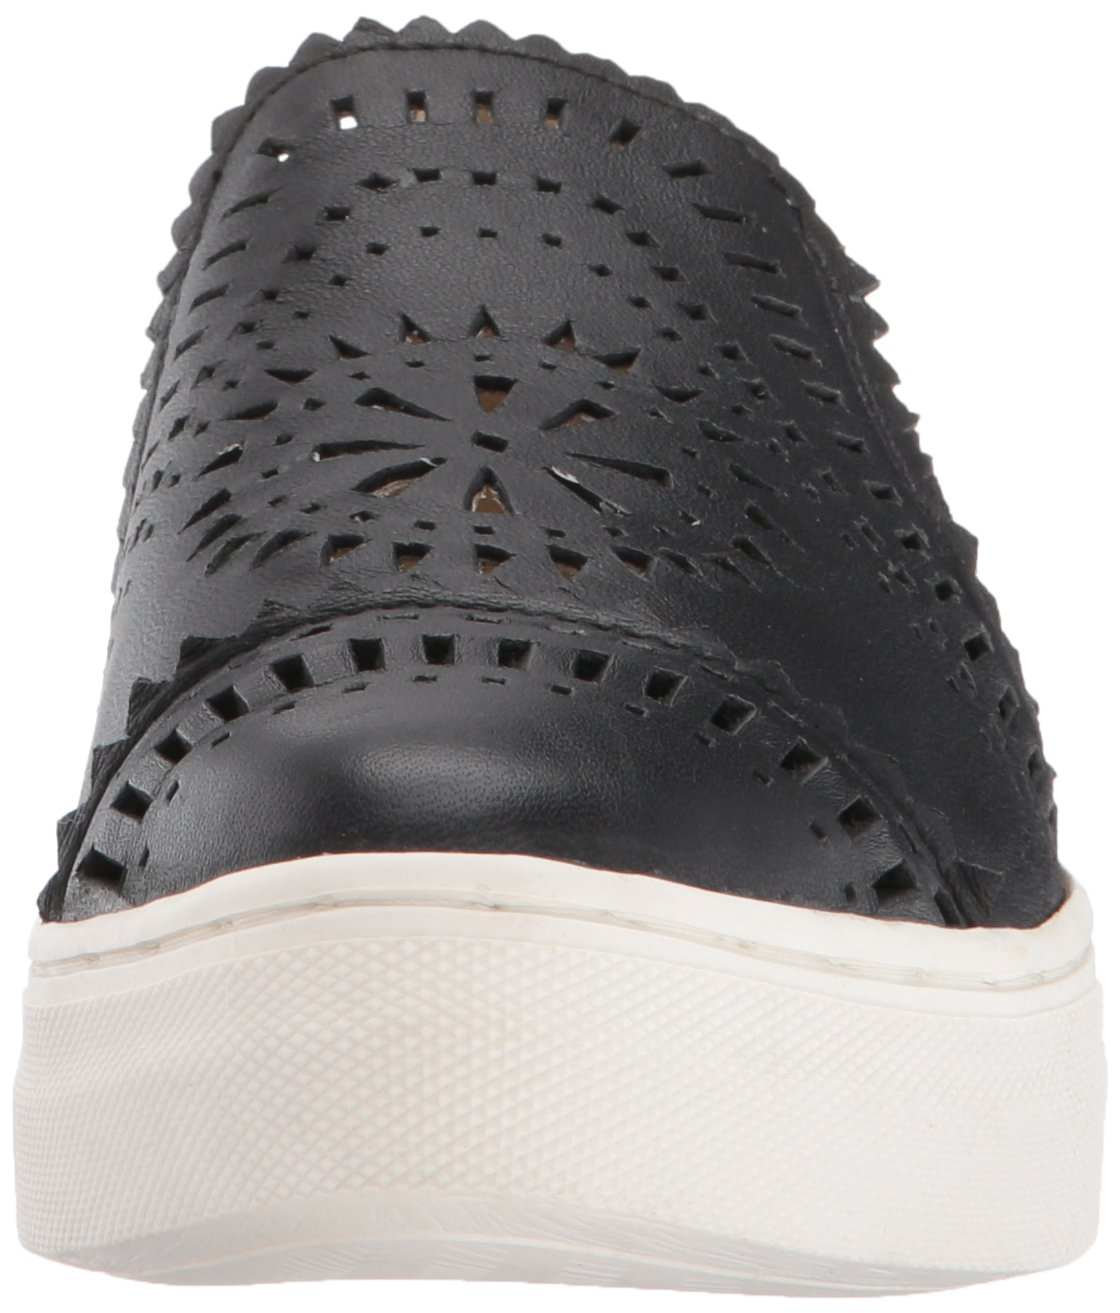 Seychelles Women's So Nice Fashion Sneaker B0743NX967 11 B(M) US|Black